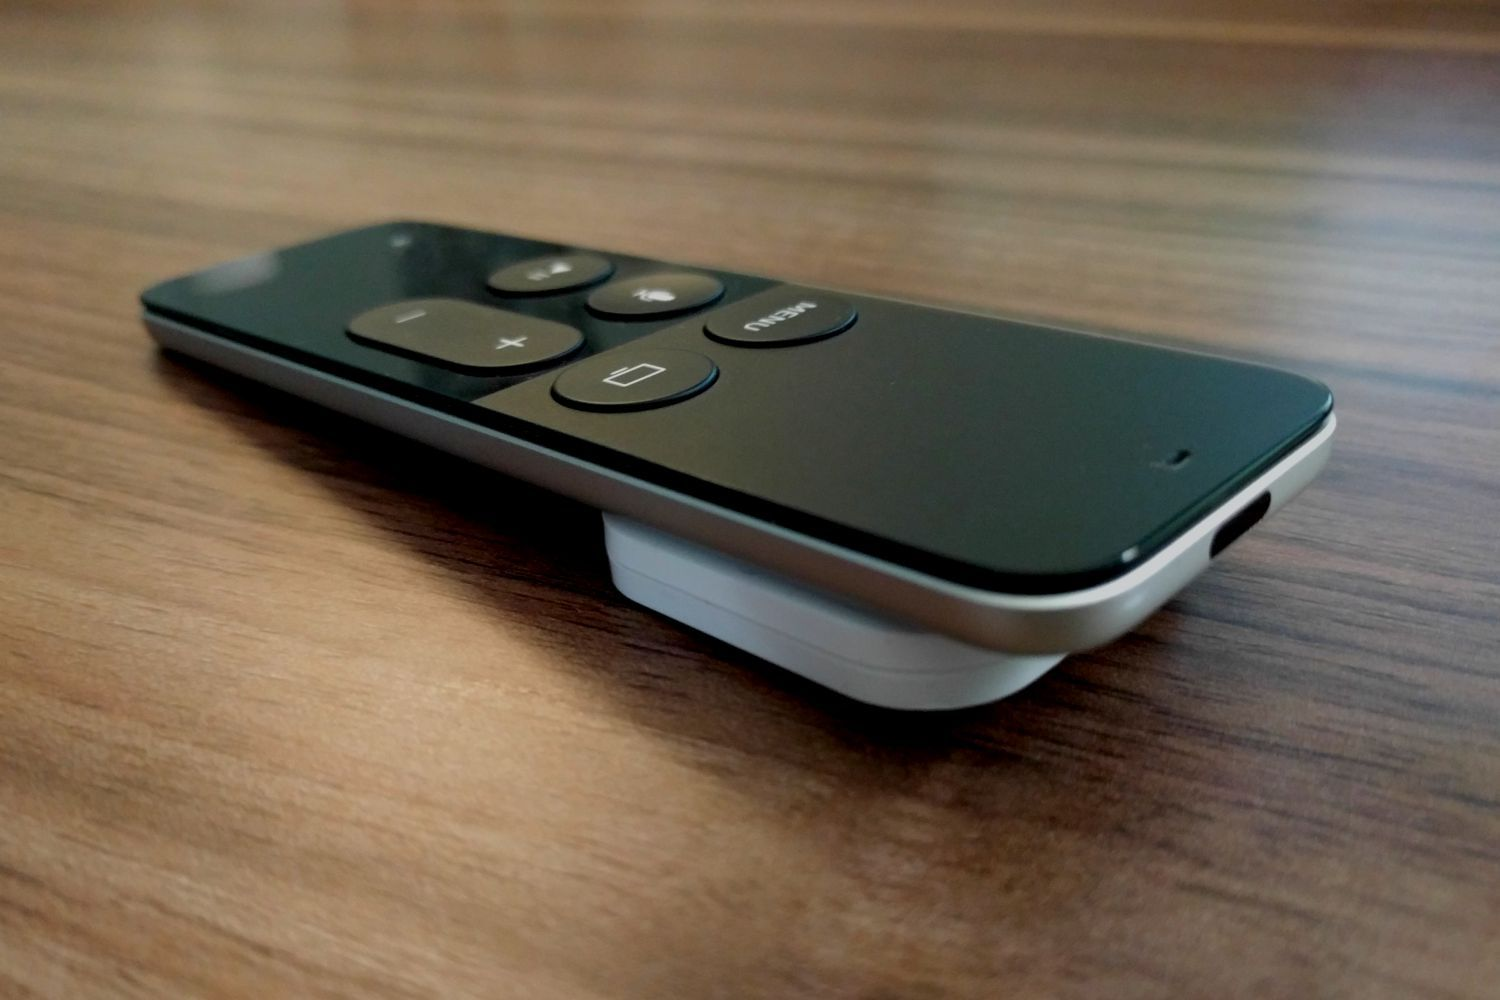 This $25 Bluetooth tracker made my Apple TV remote less